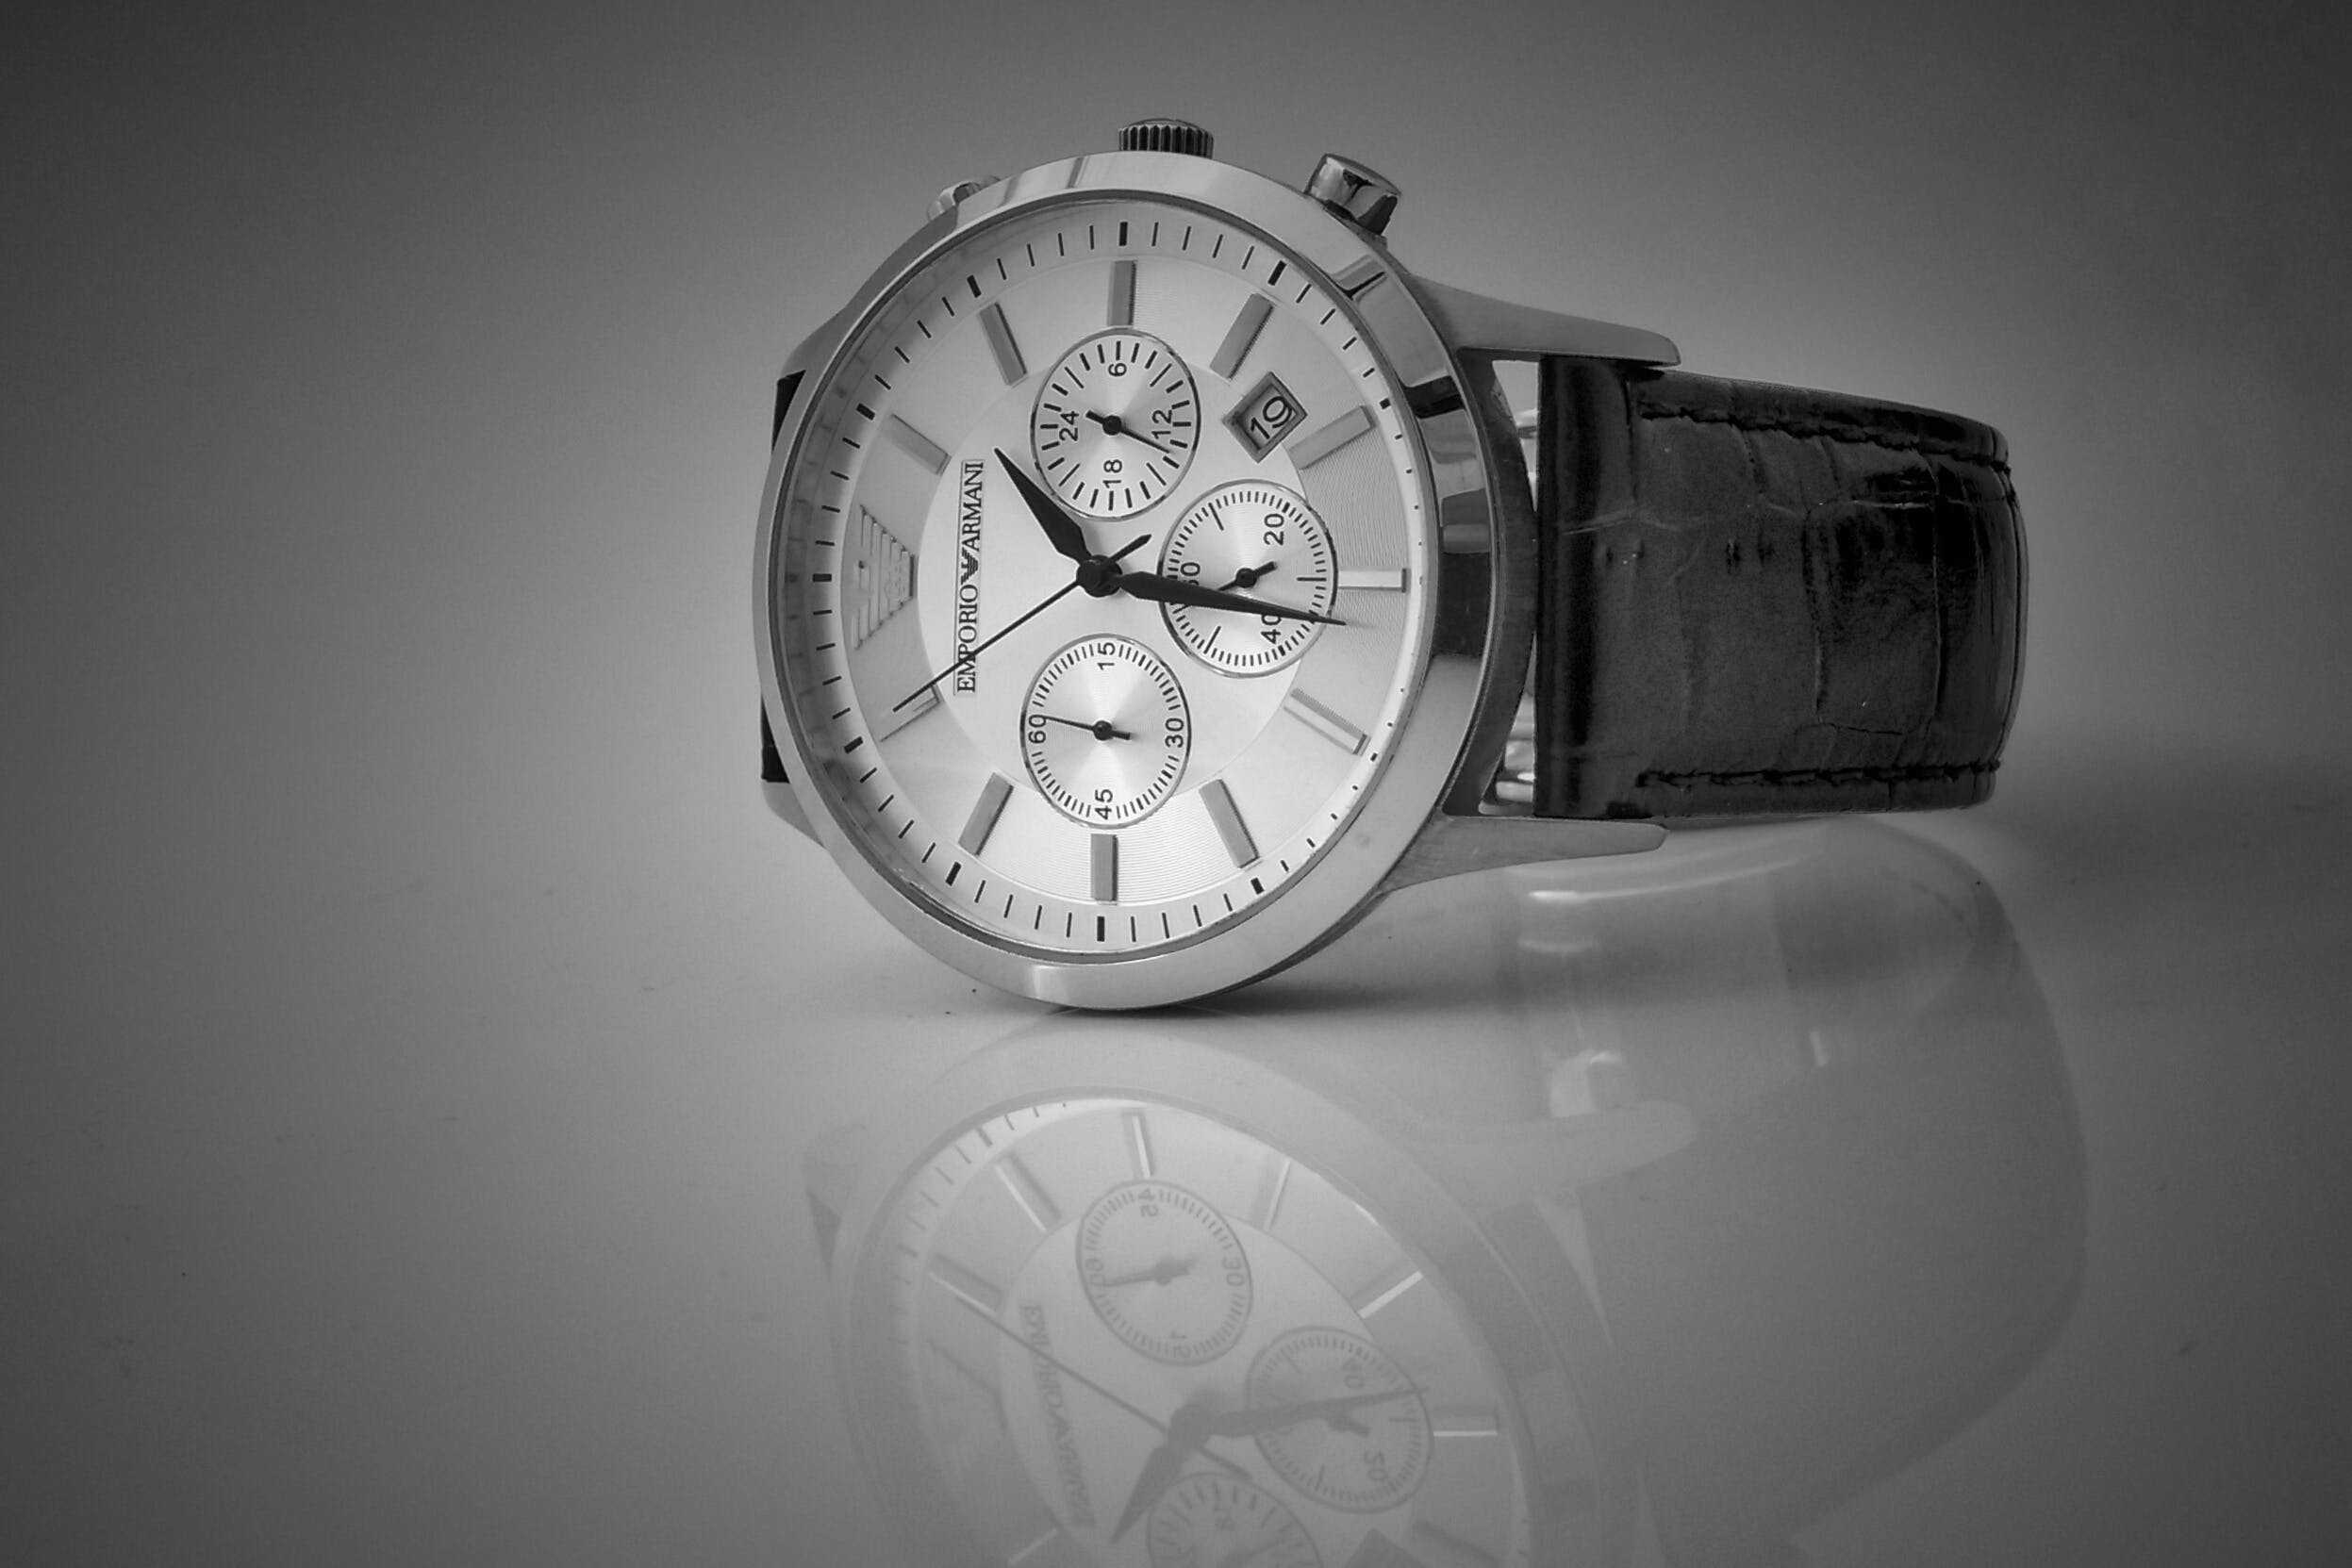 Black Leather Strap Silver Chronograph Watch